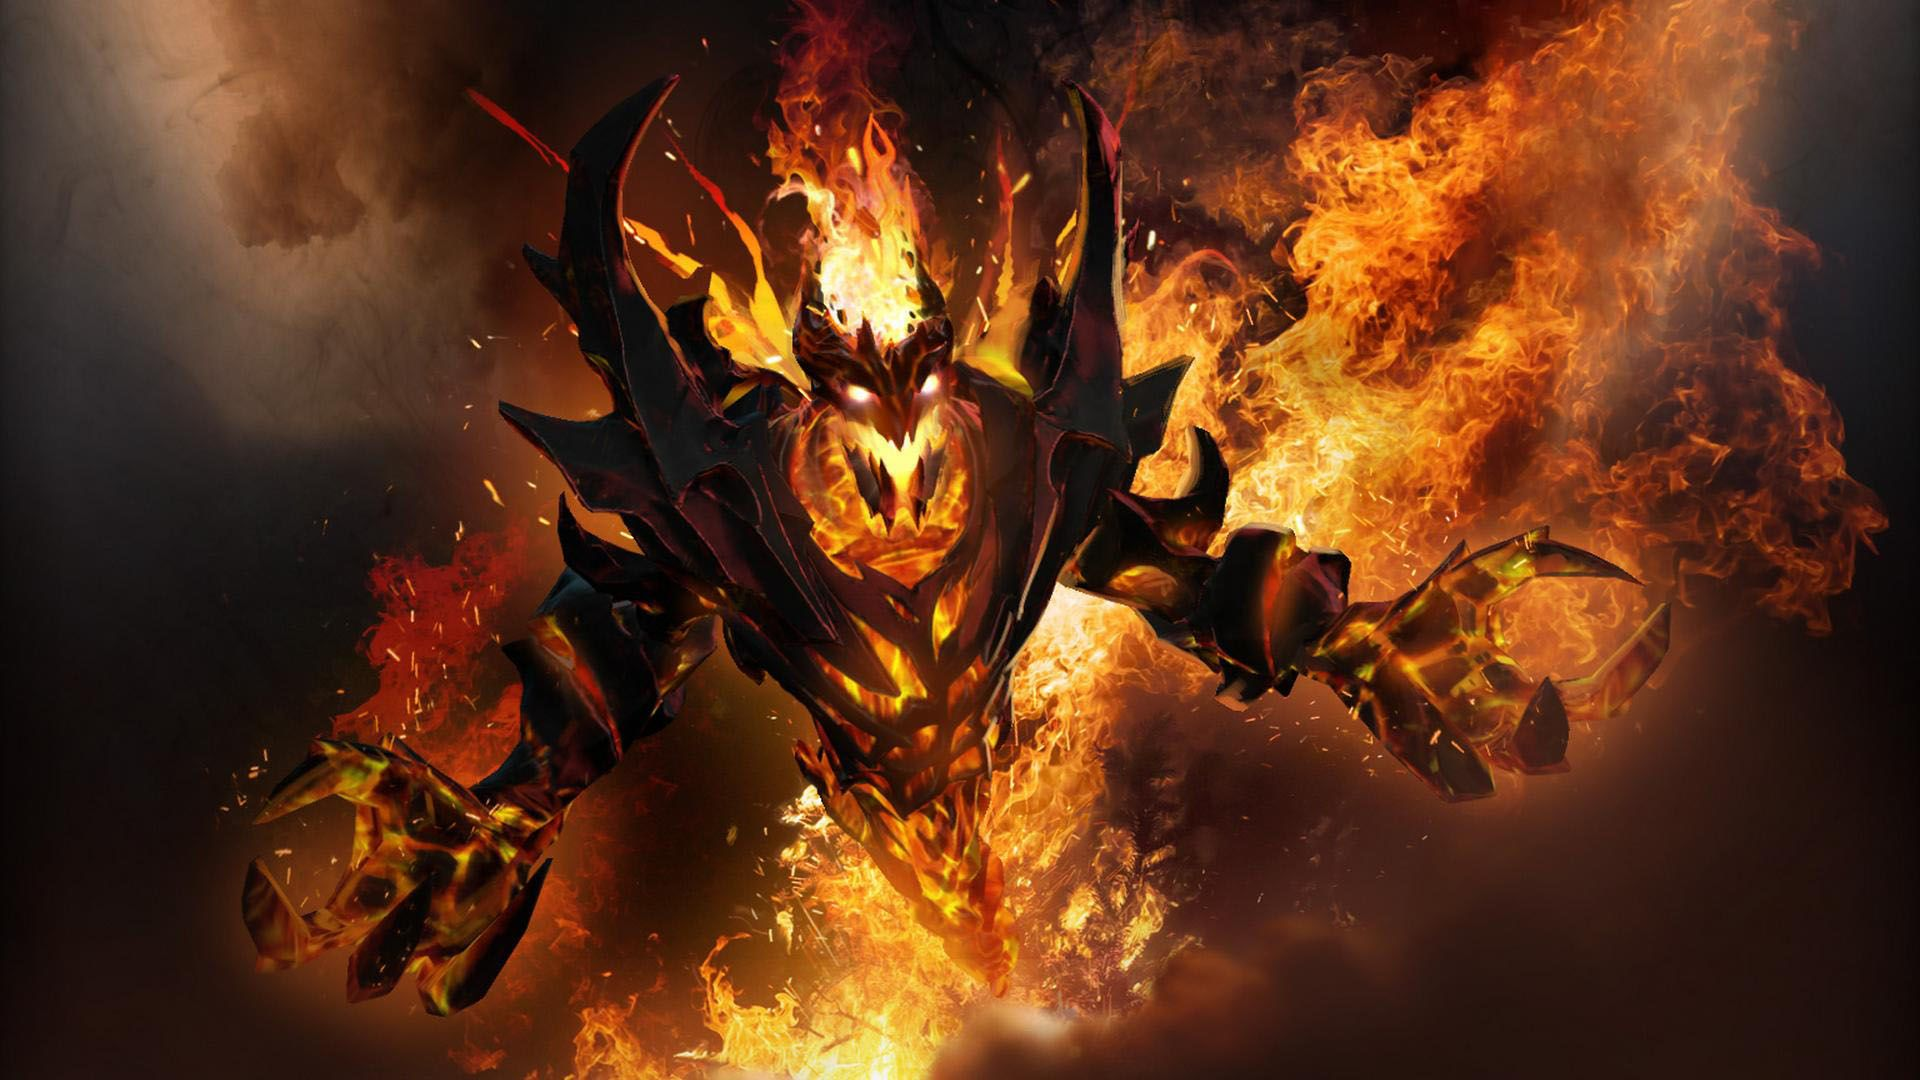 Hd wallpaper dota 2 - Dota 2 Shadow Fiend Wallpapers